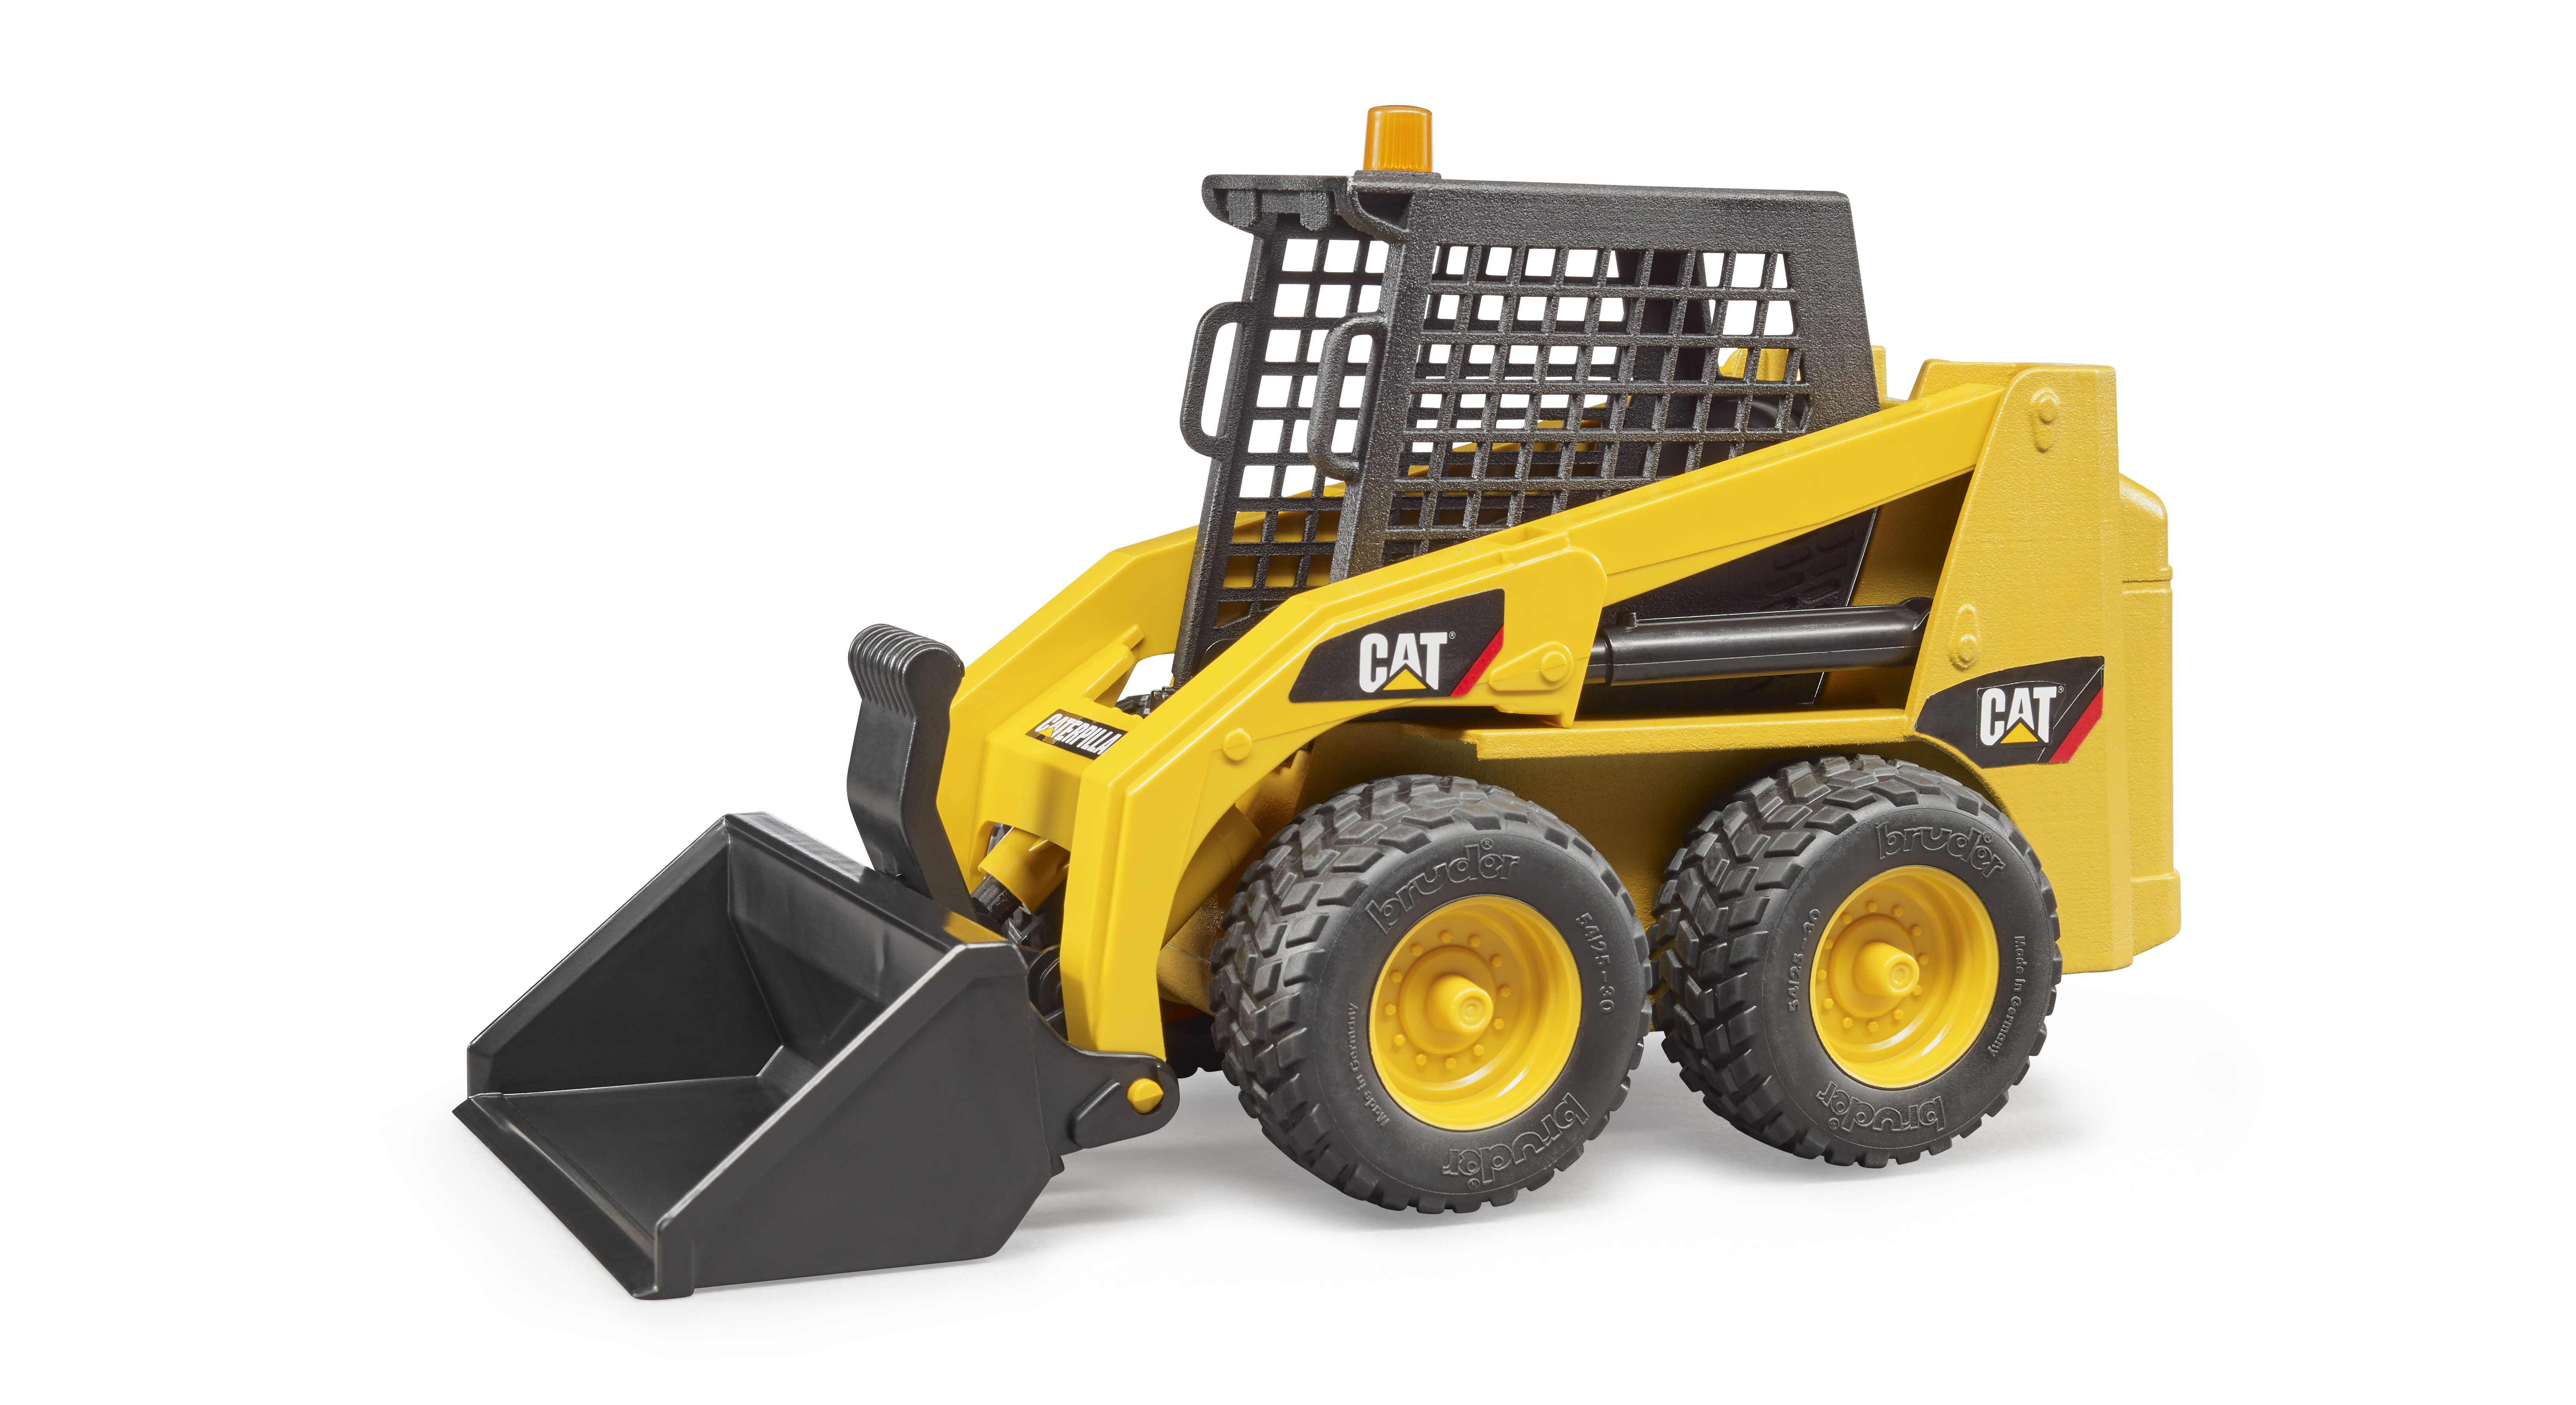 Bruder 02481 - CAT minishovel